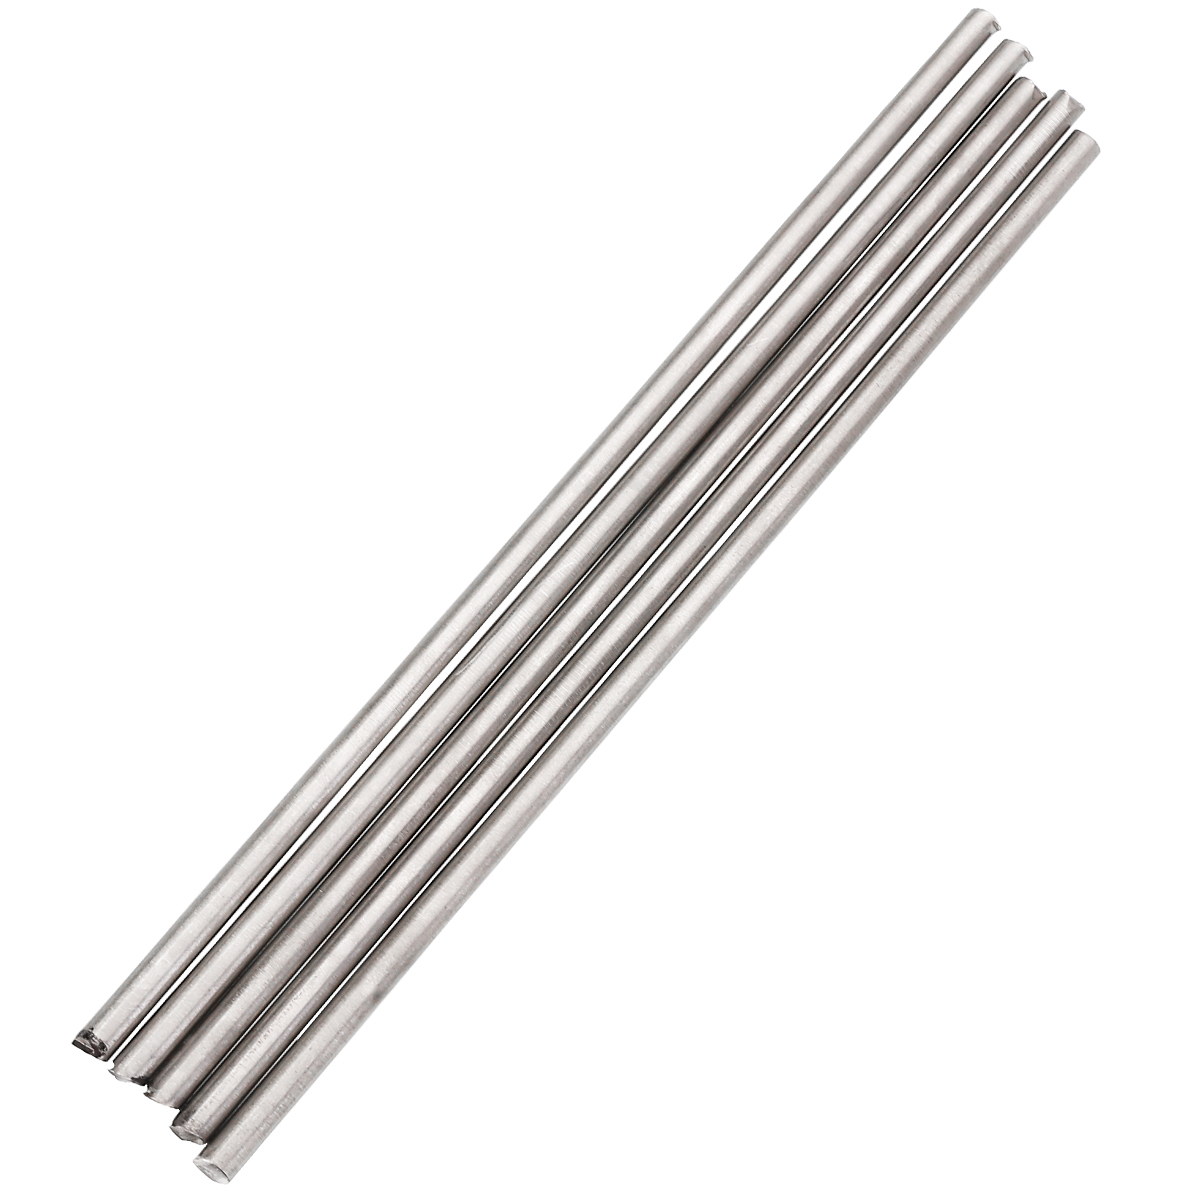 5Pcs 4x250mm Silver Titanium Rod Welding Rod Metal Soldering Brazing Wire Solder TIG Filler Rods With Corrosion Resistance